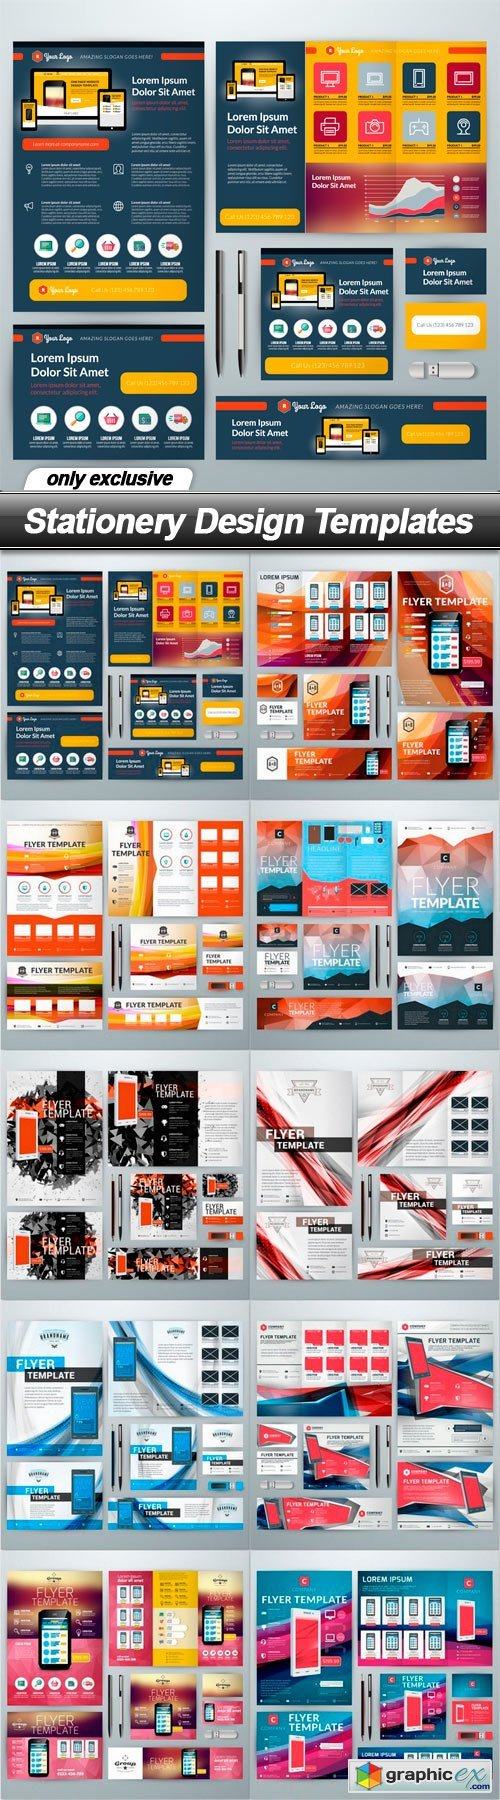 Stationery Design Templates - 10 EPS